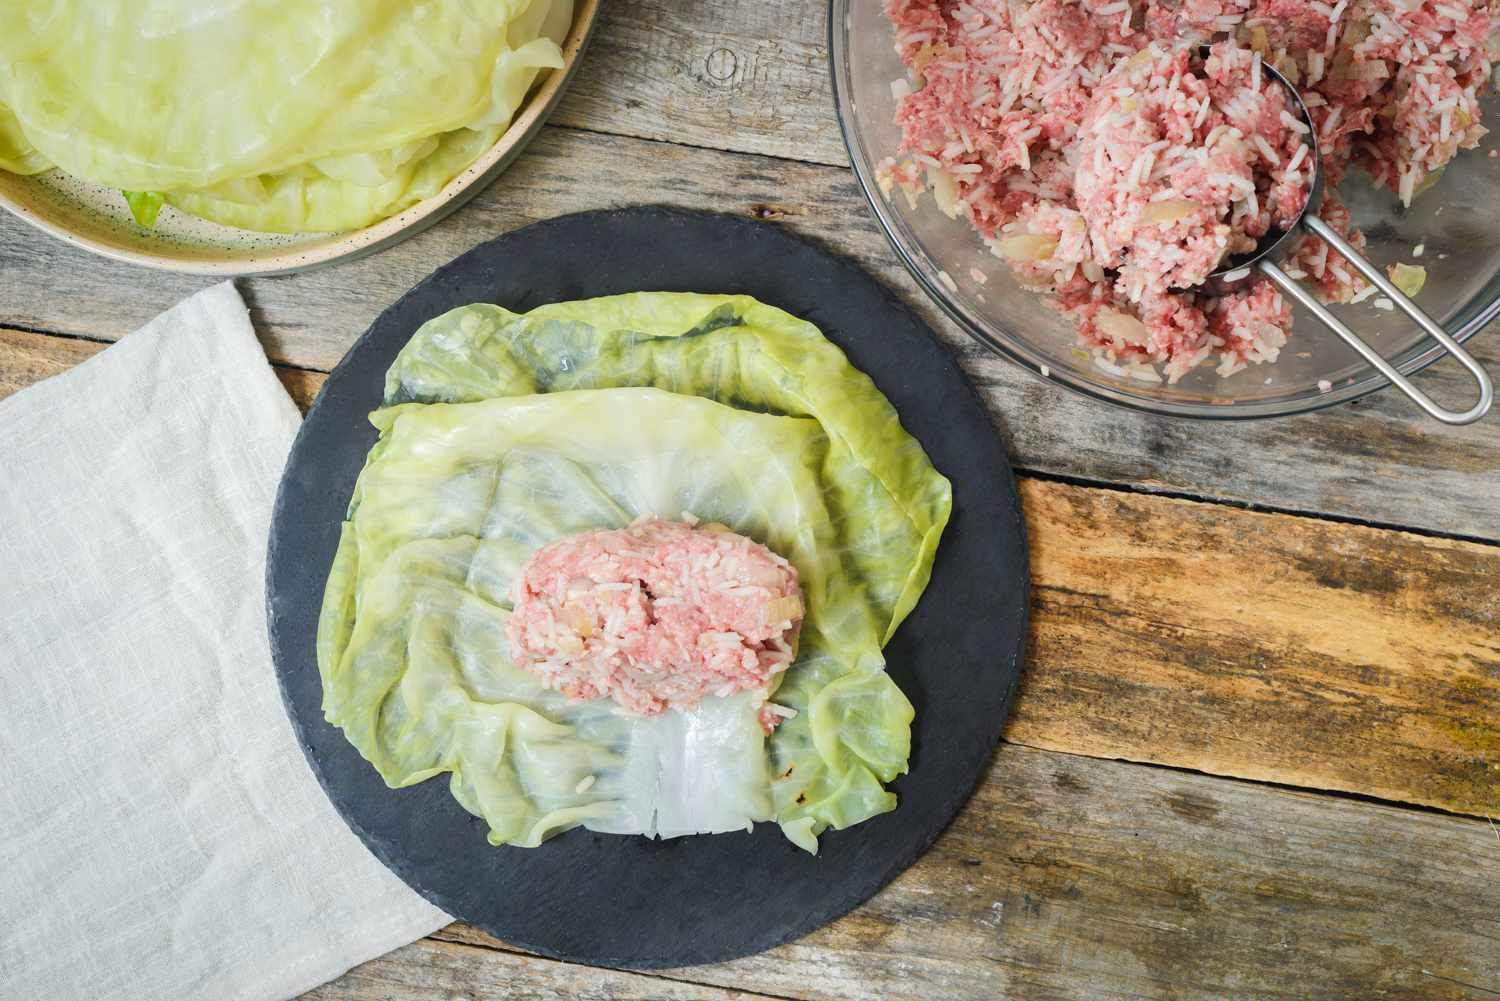 Meat mixture on cabbage leaf